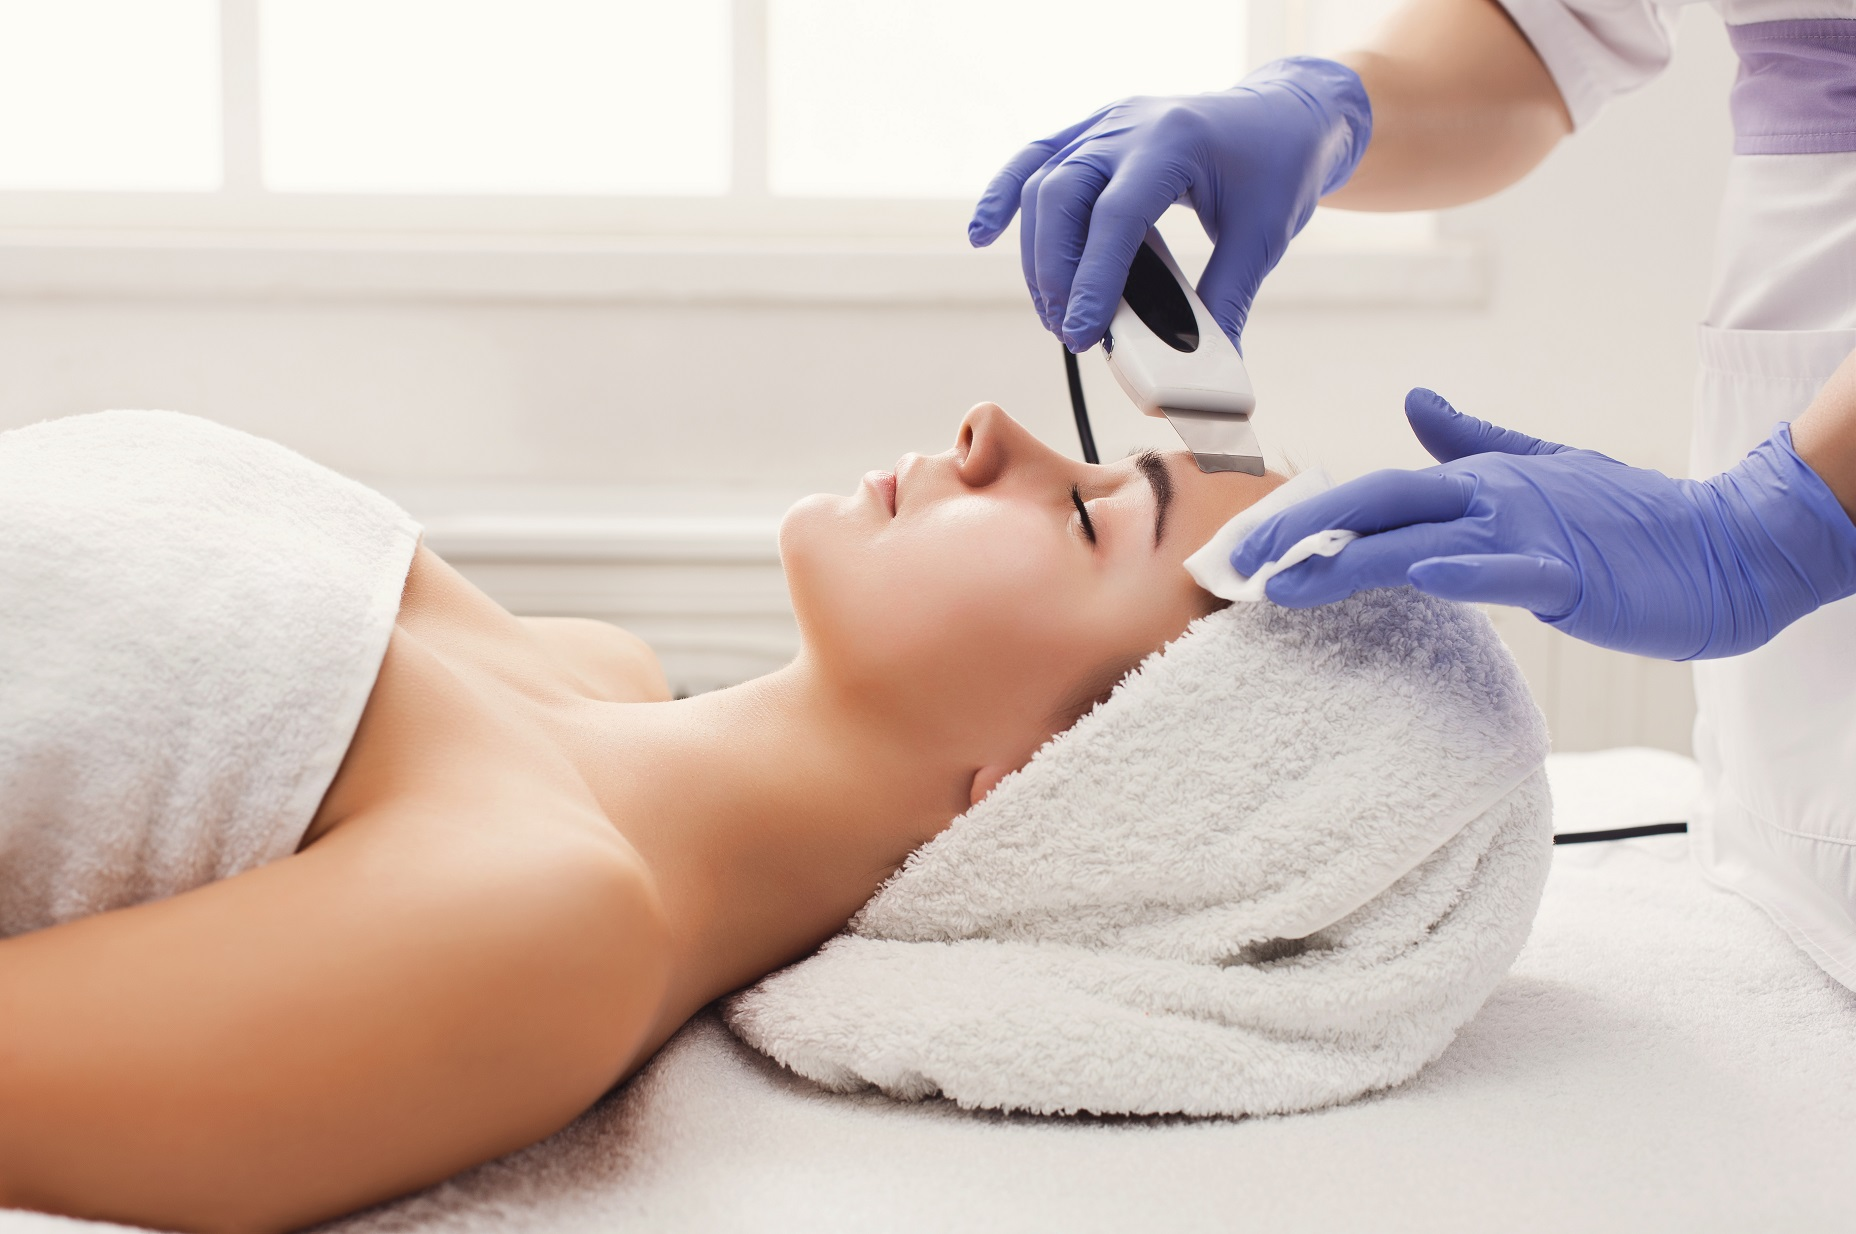 Rejuvenating facial treatment. Model getting lifting therapy massage in a beauty SPA salon. Exfoliation, stimulation and hydratation. Aesthetic cosmetology, closeup, copy space